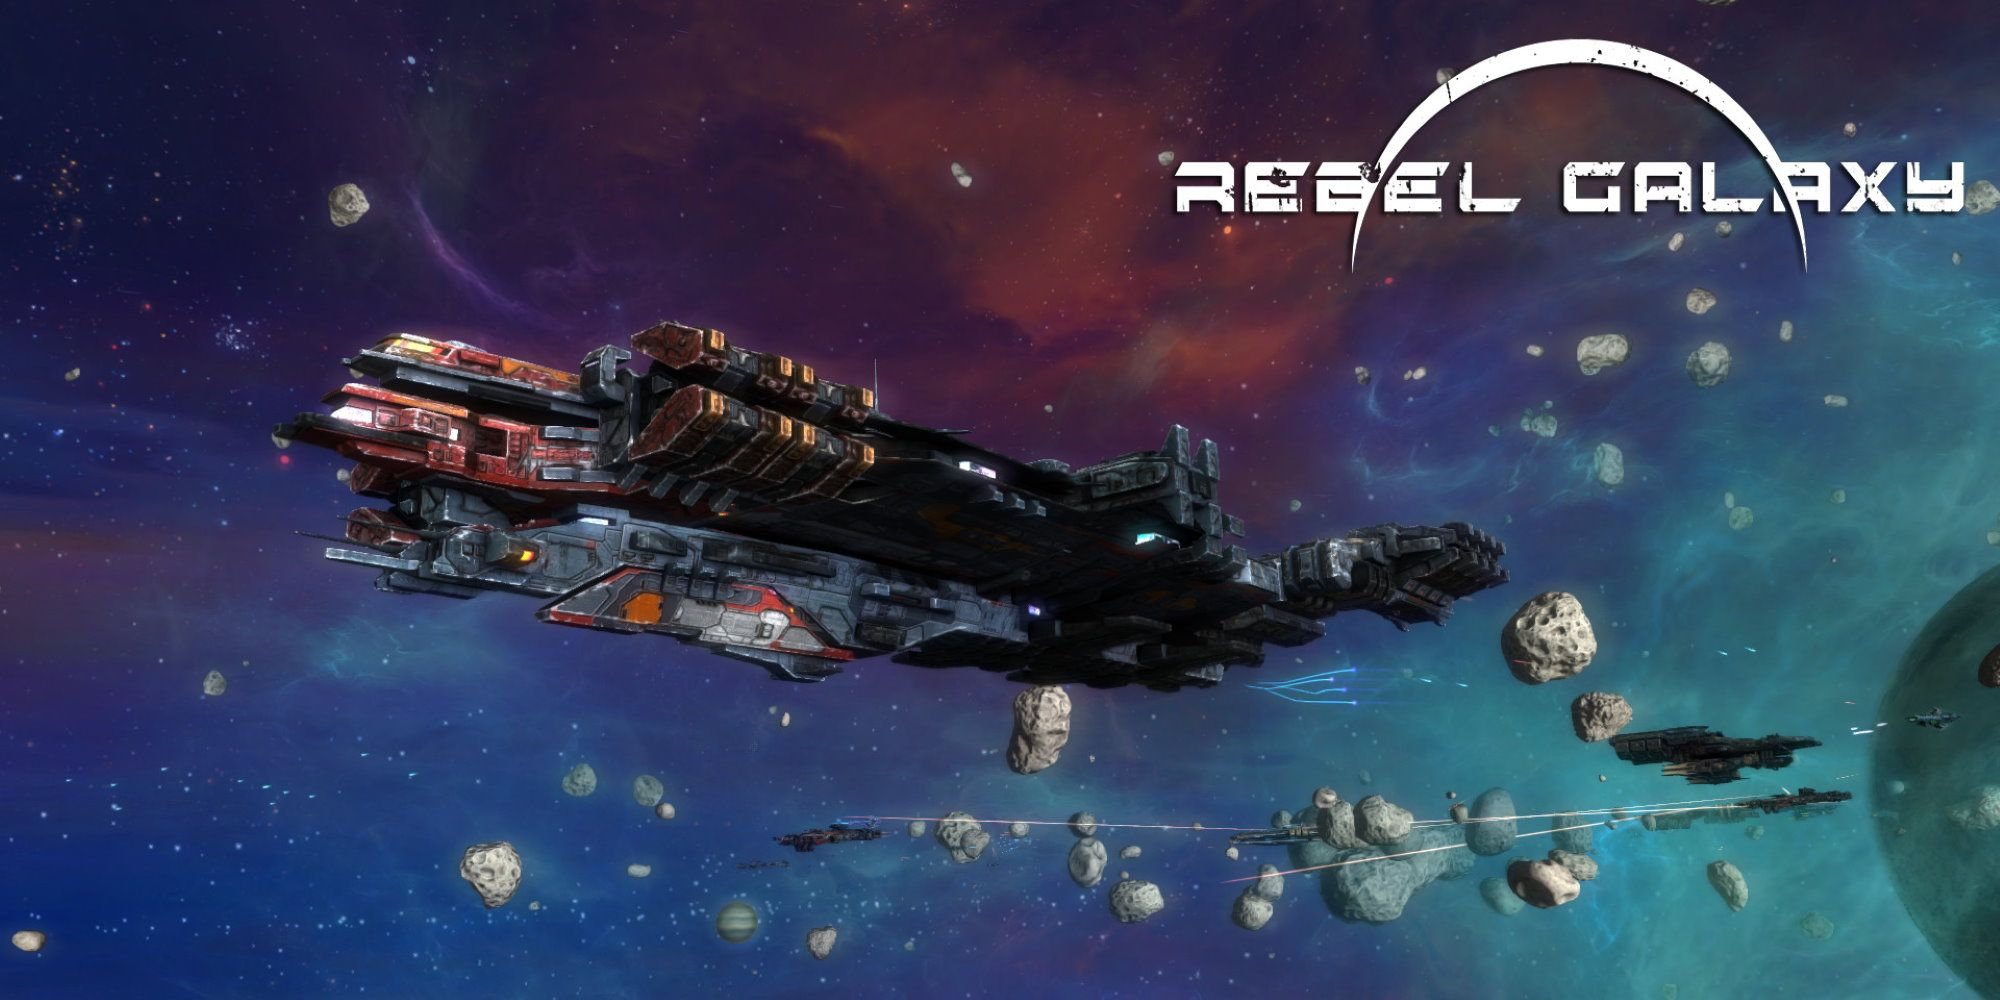 Rebel Galaxy Is The Next Free Game On Epic Games Store